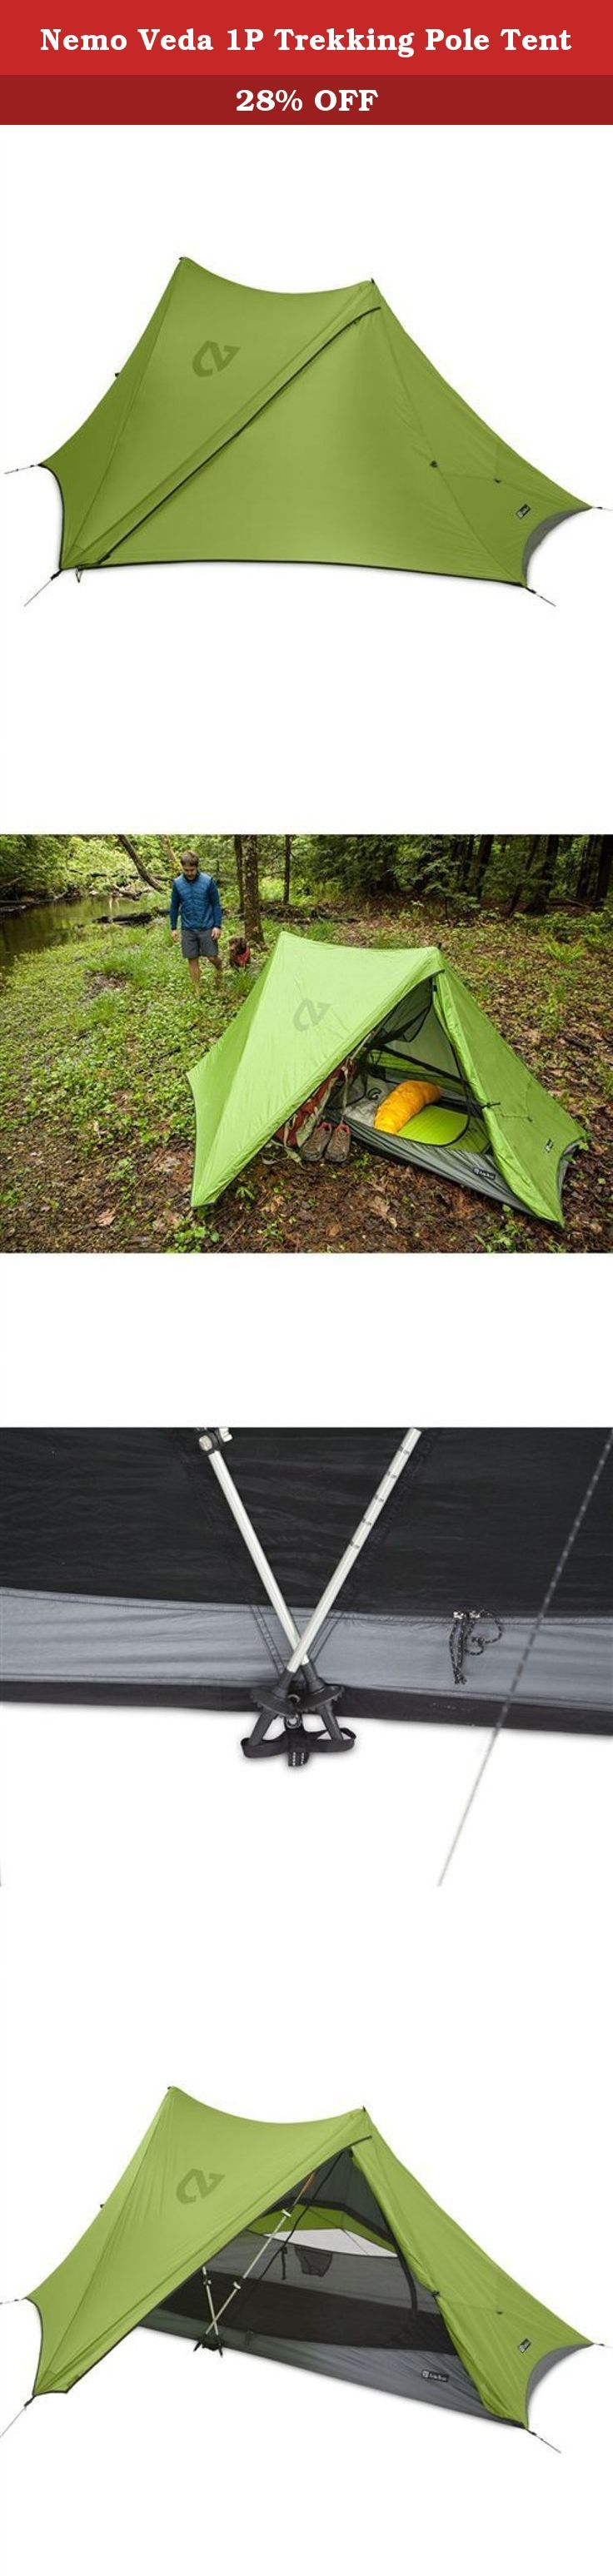 Nemo Veda 1P Trekking Pole Tent. FEATURES of the Nemo Veda 1 Person Tent Vestibules  sc 1 st  Pinterest & 222 best Tents Tents u0026 Shelters Camping u0026 Hiking Outdoor ...